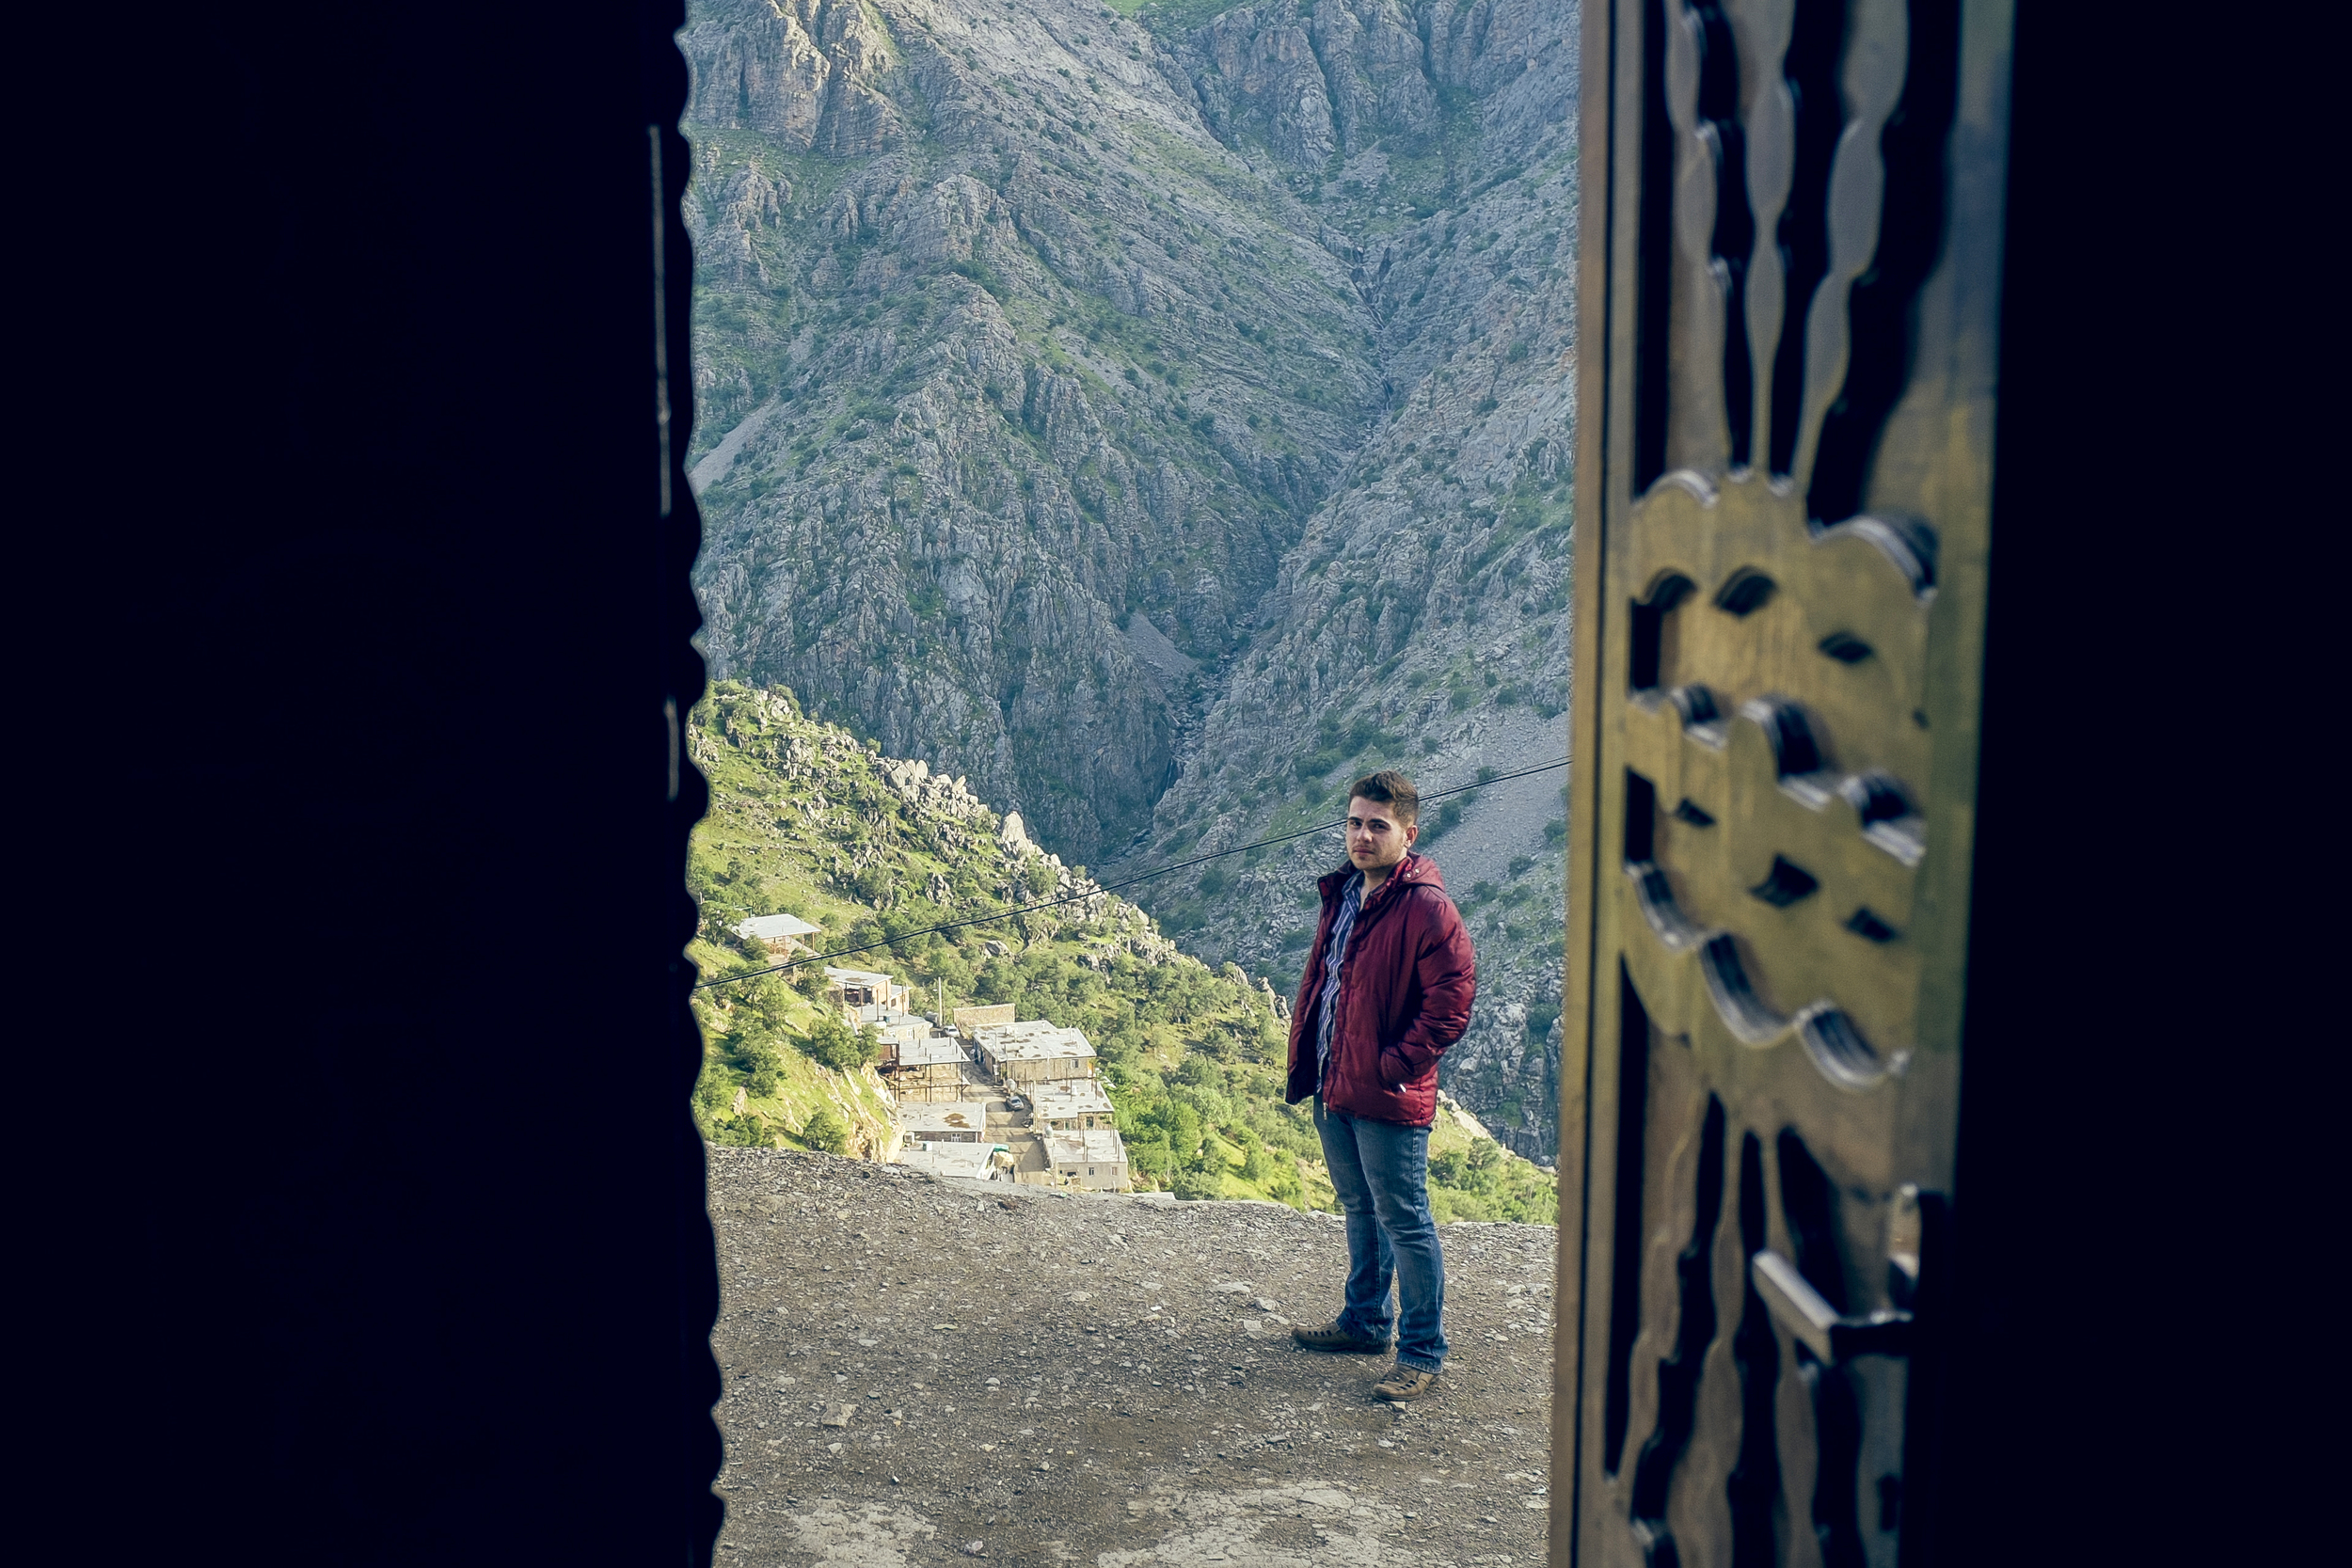 Arshad, a dear friend who hosted and showed me around, with the cliffs of Hawraman Takht at the background.